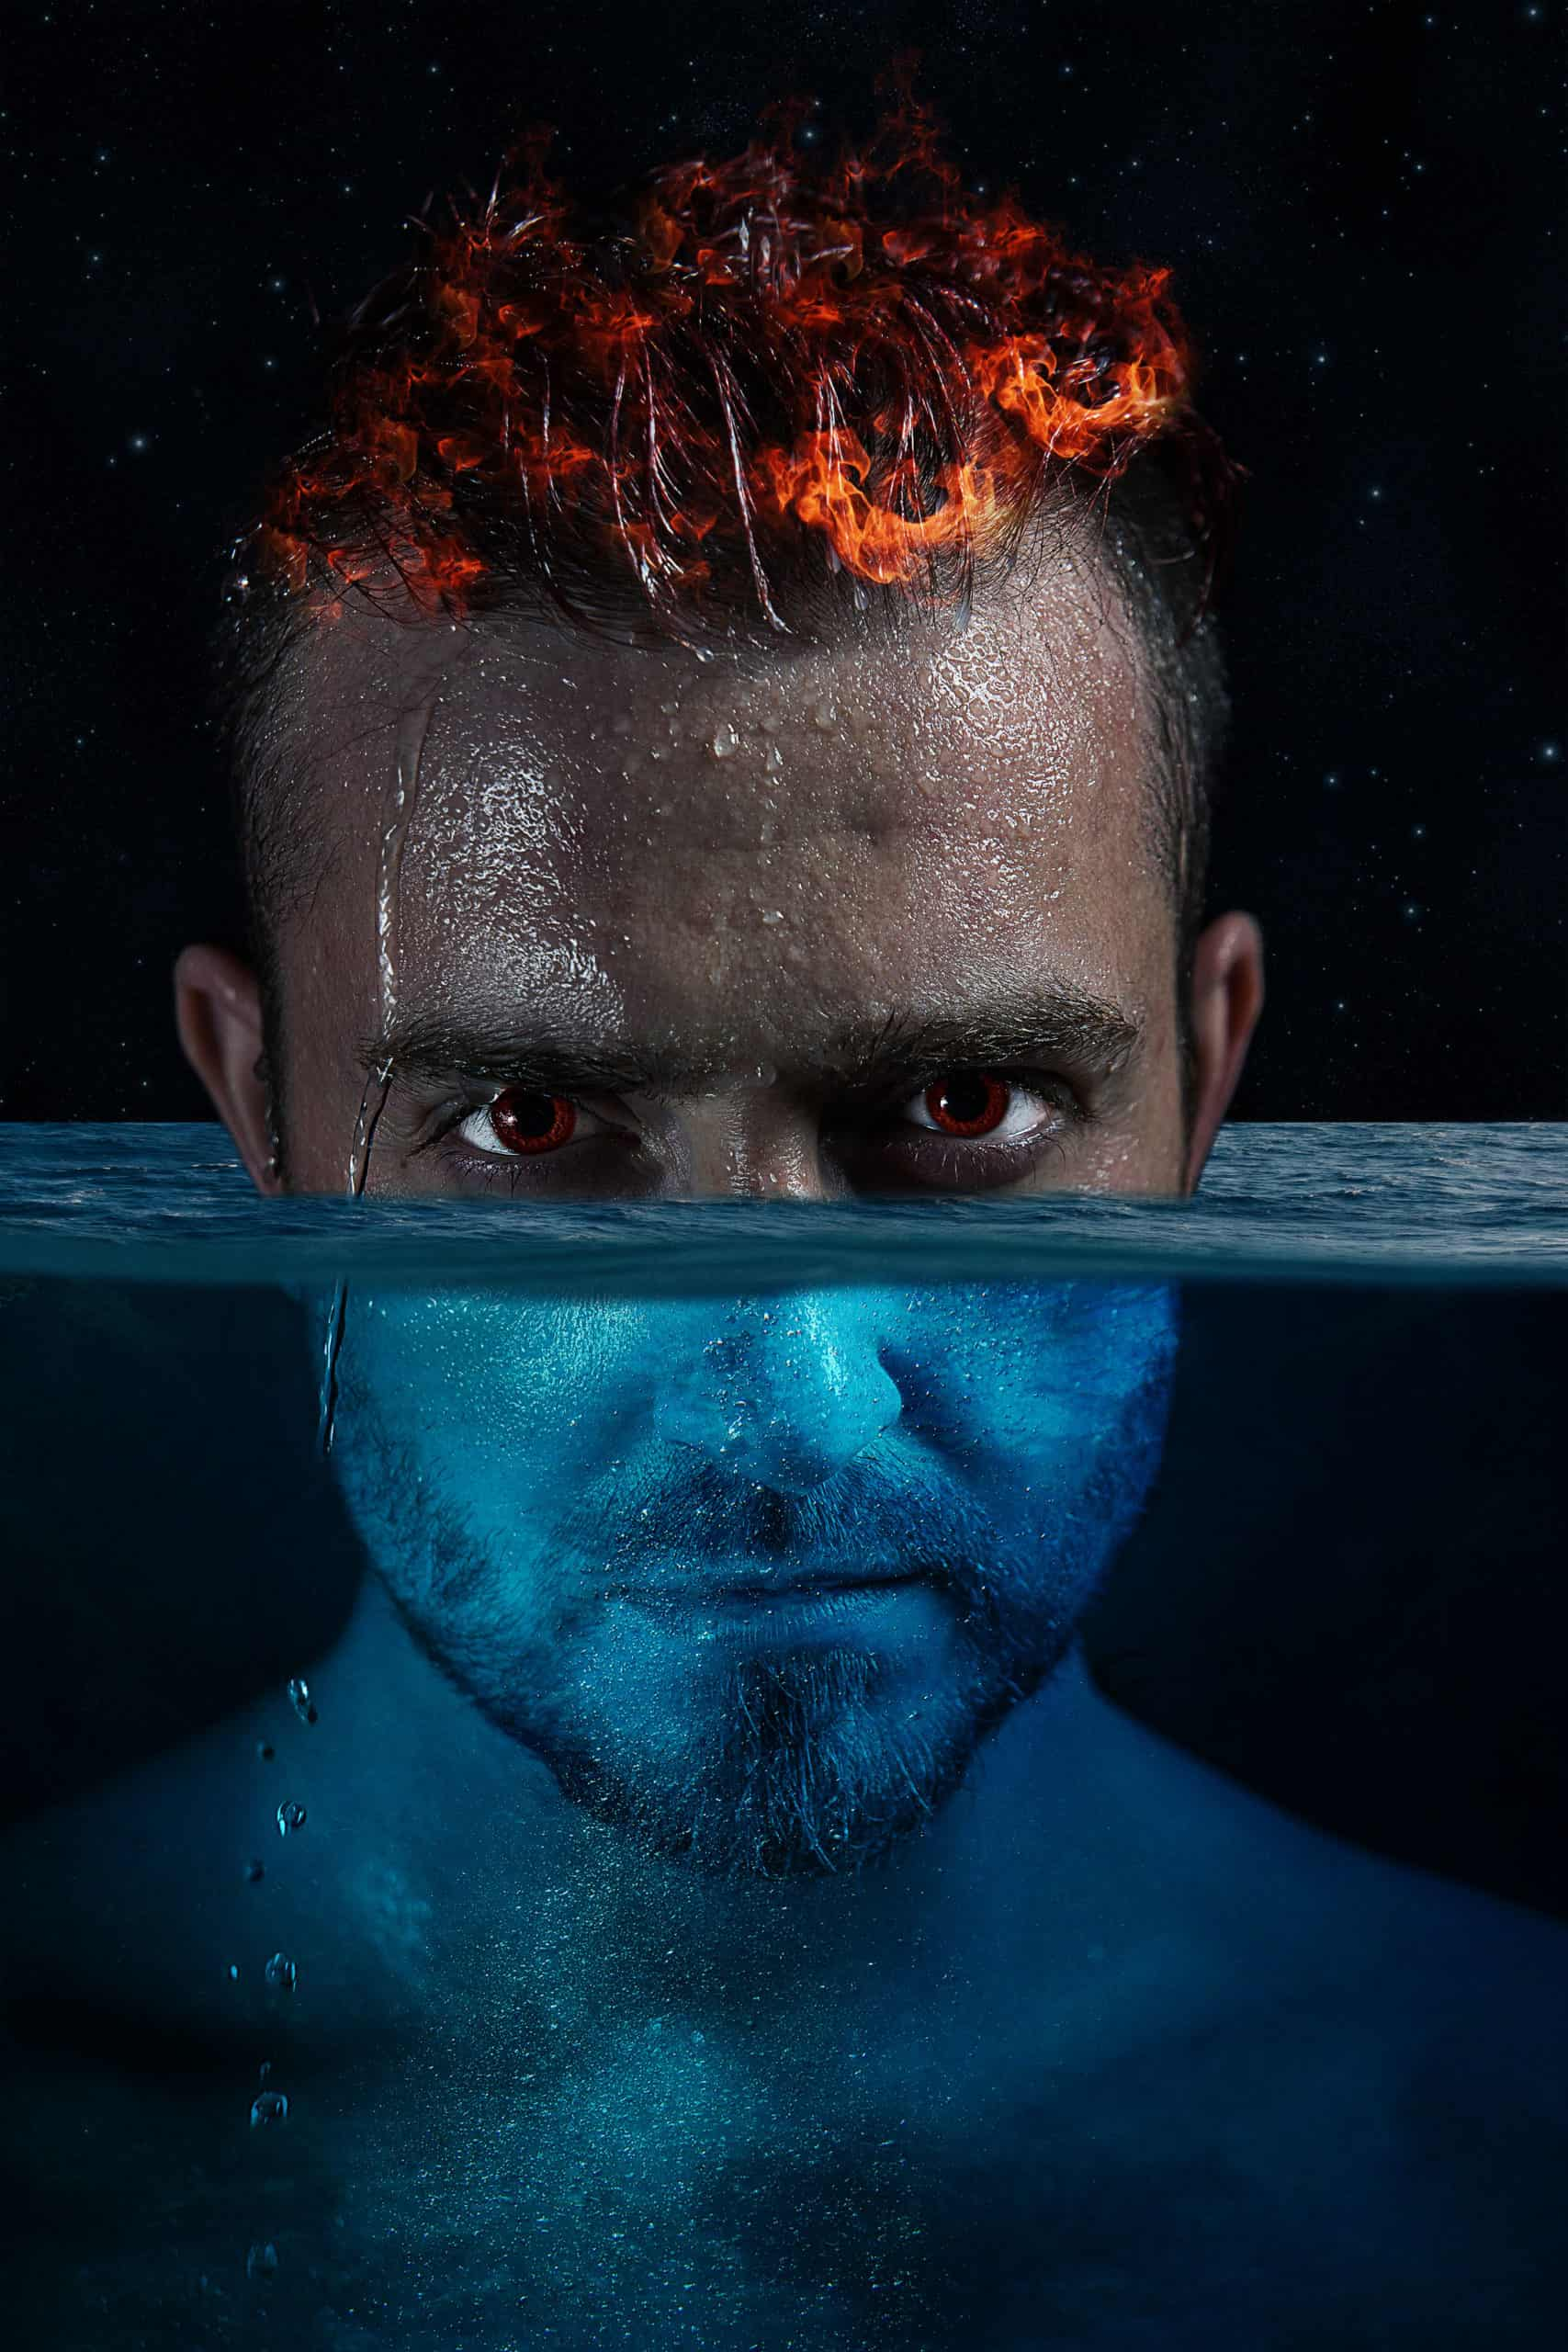 How to Create a Water & Fire Portrait Photo Manipulation in Photoshop